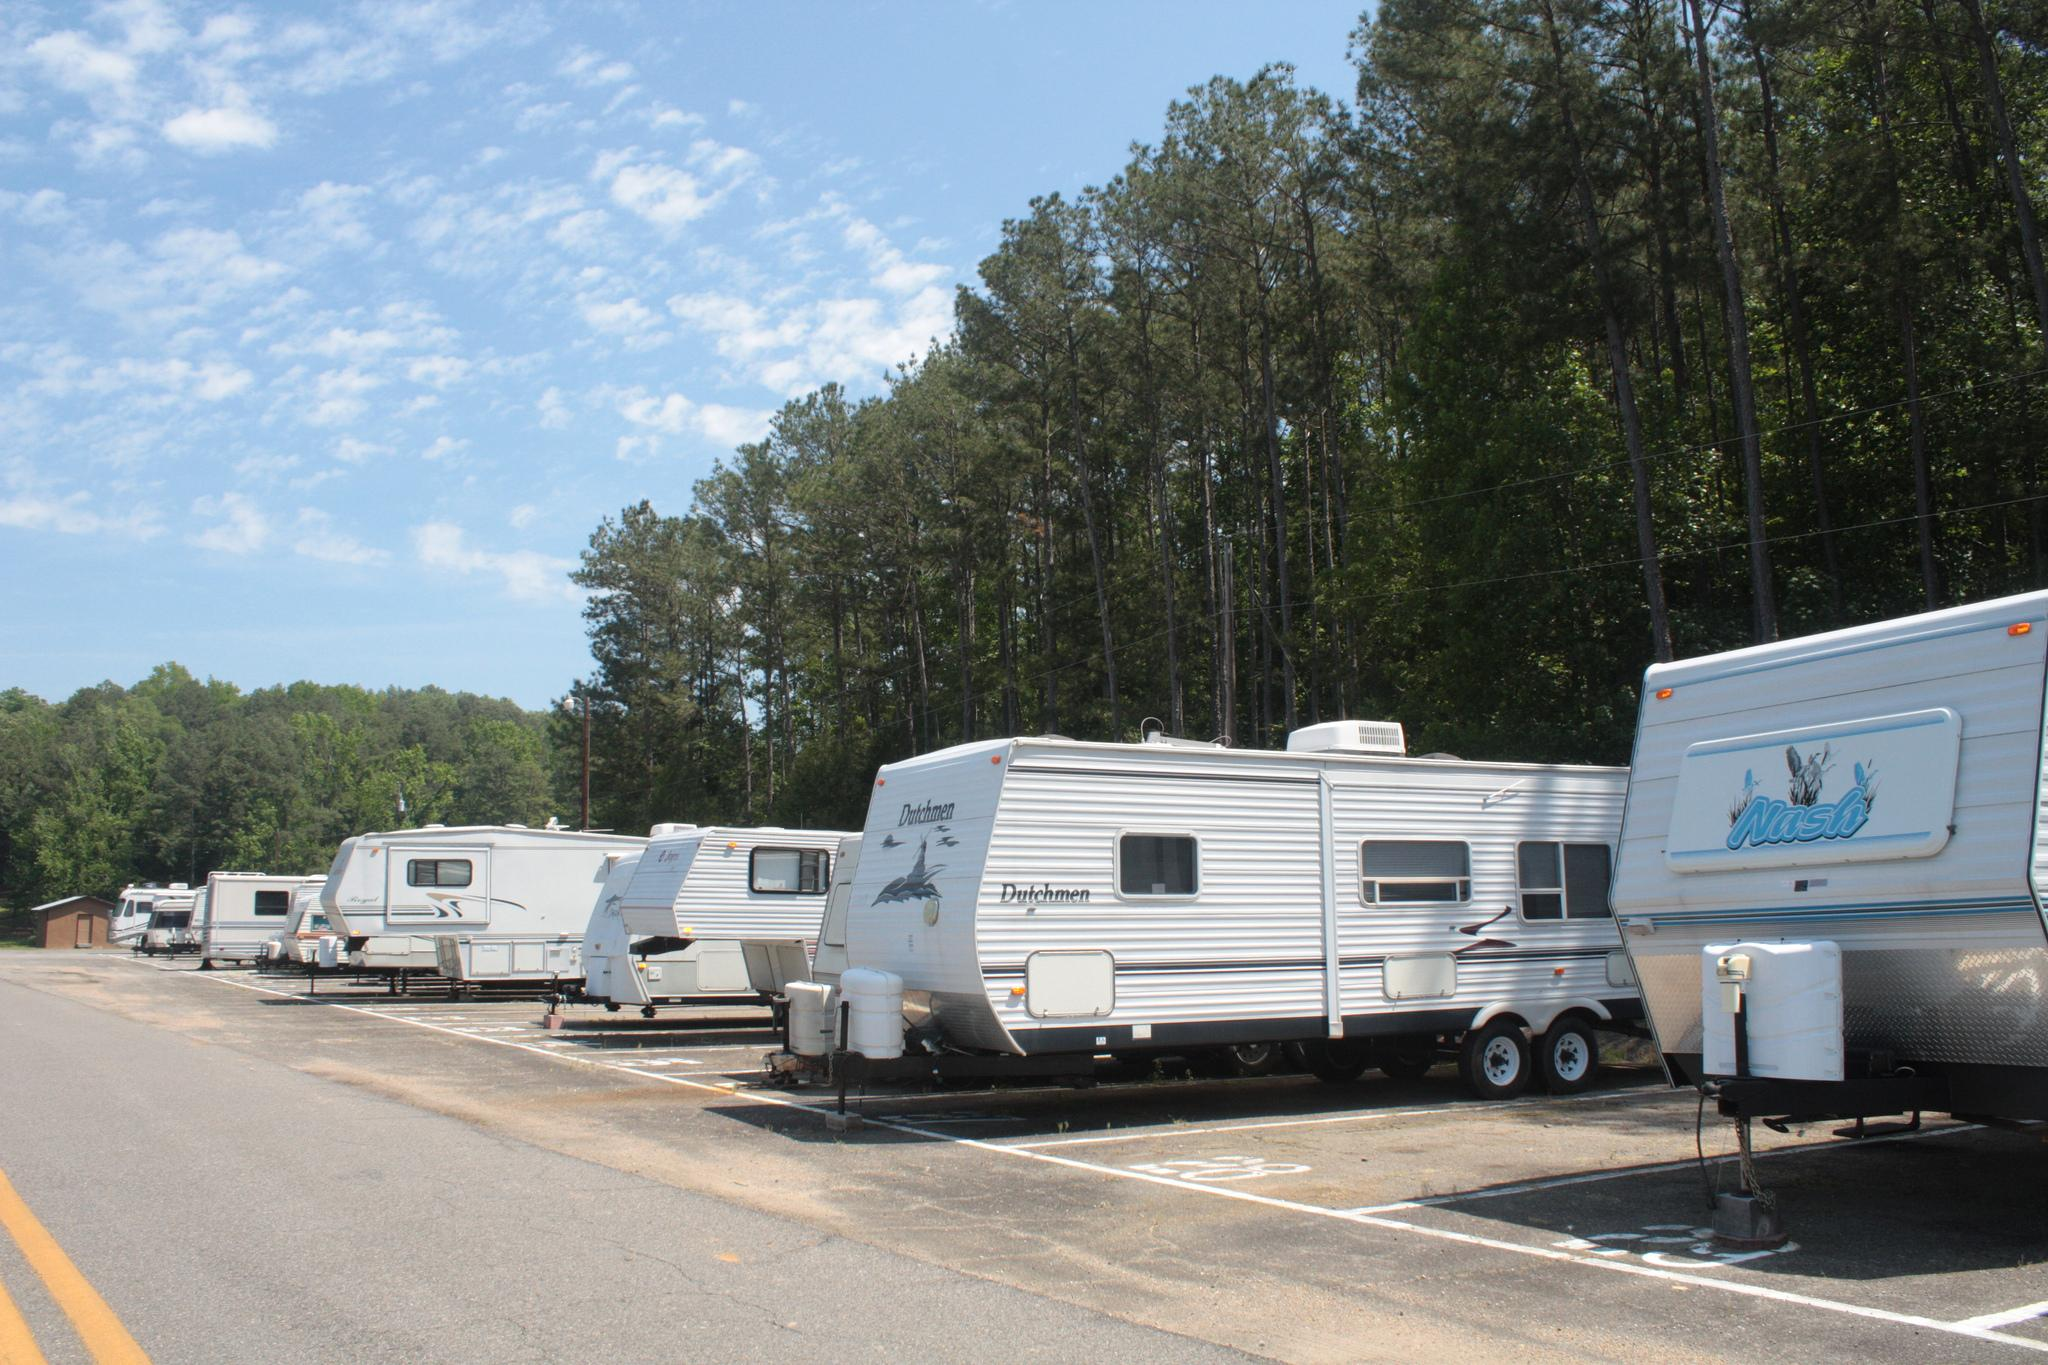 Lake Lurleen State Park RV Storage